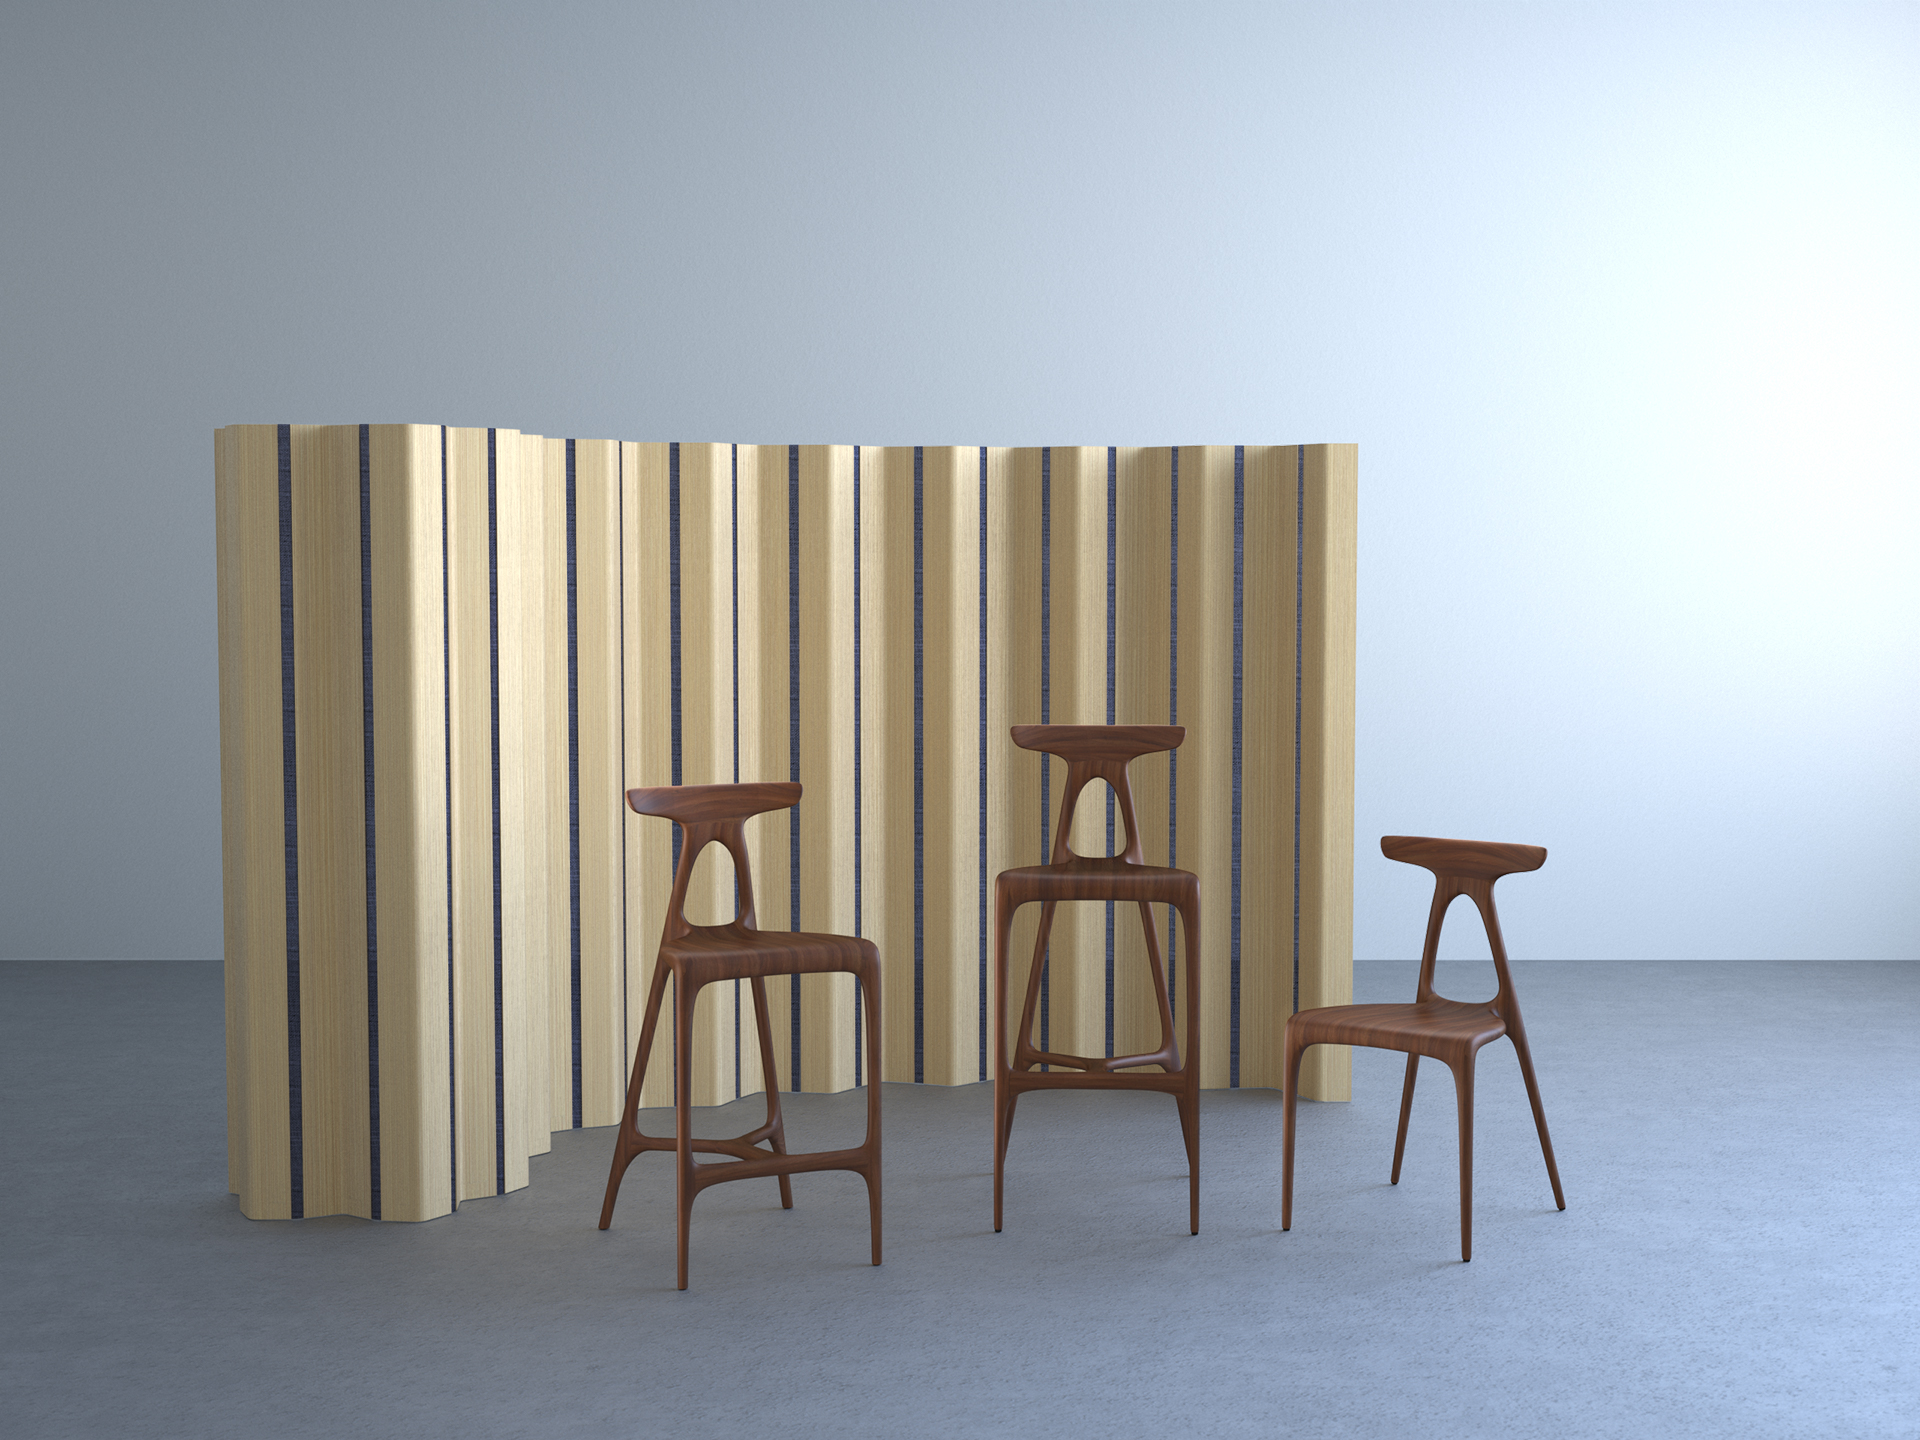 Brodie Neill's  Made in Ratio  will be showing a new screen / room divider called 'Theorem' along with extensions to their successful 'Alpha' chair in the form of a barstool in two heights. Both stools exhibit the same sinuous form as the chair.